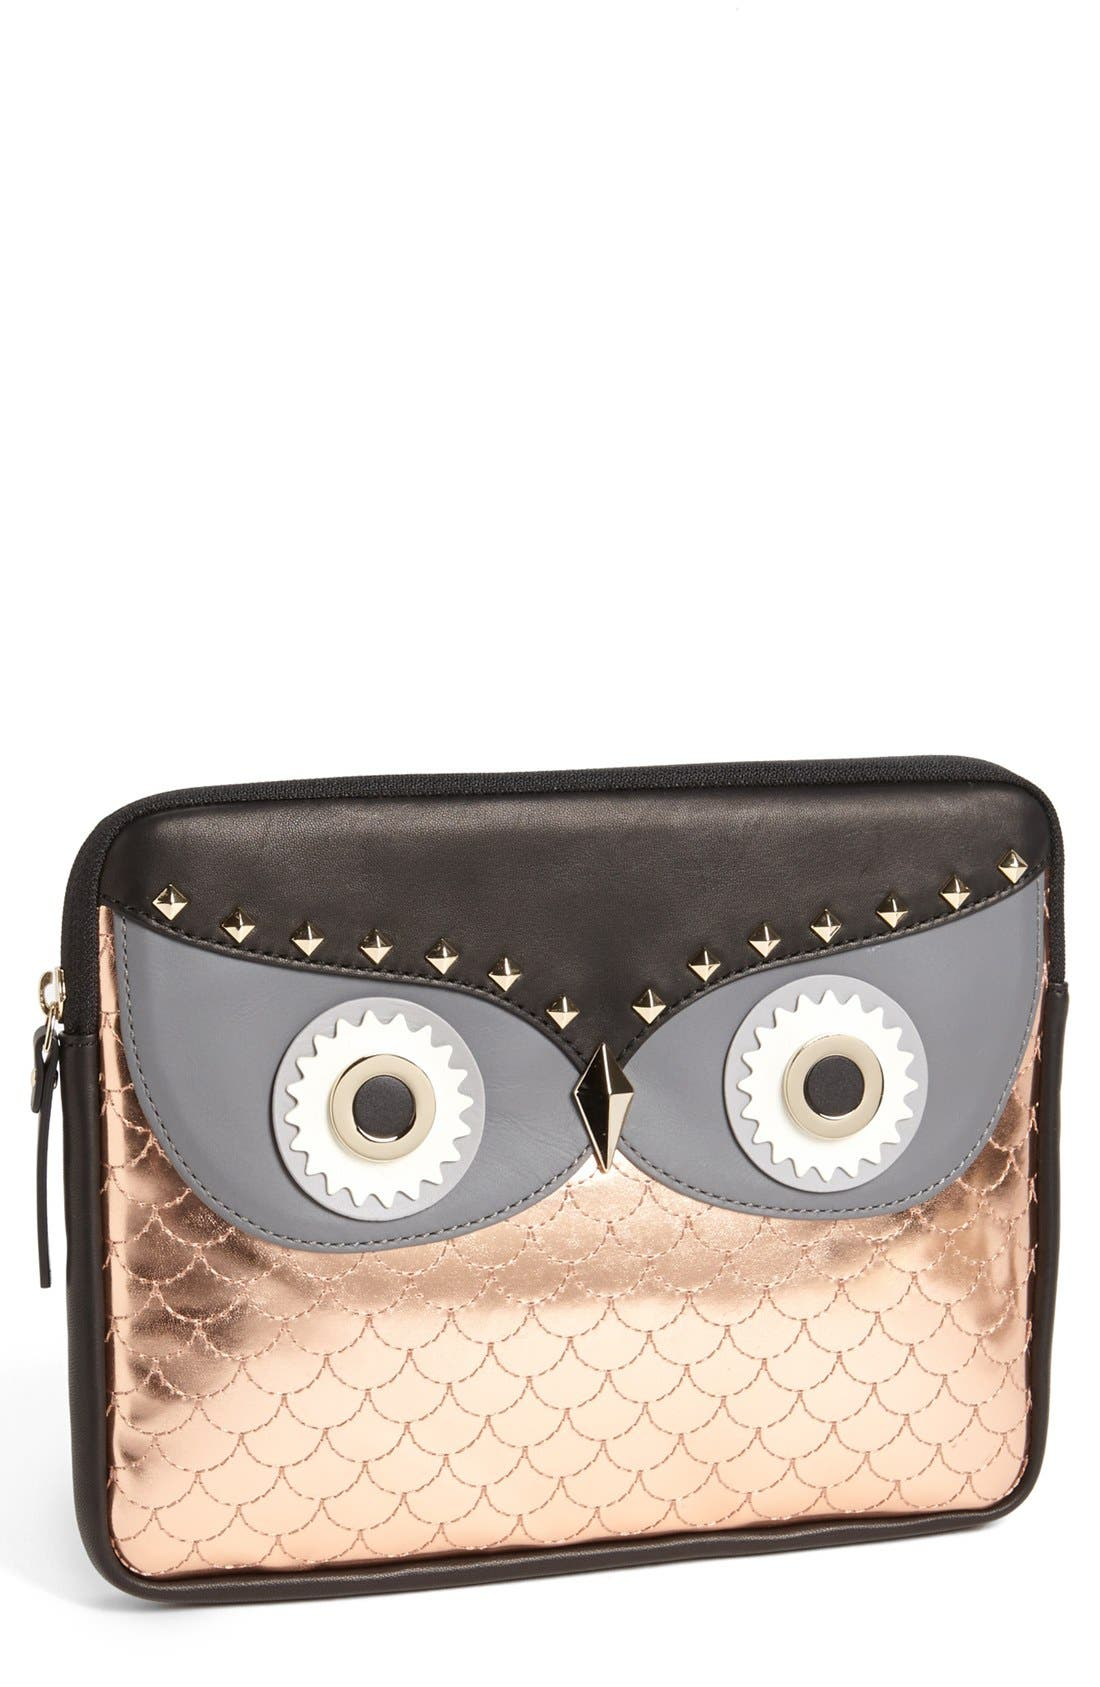 Main Image - kate spade new york 'owl' iPad sleeve